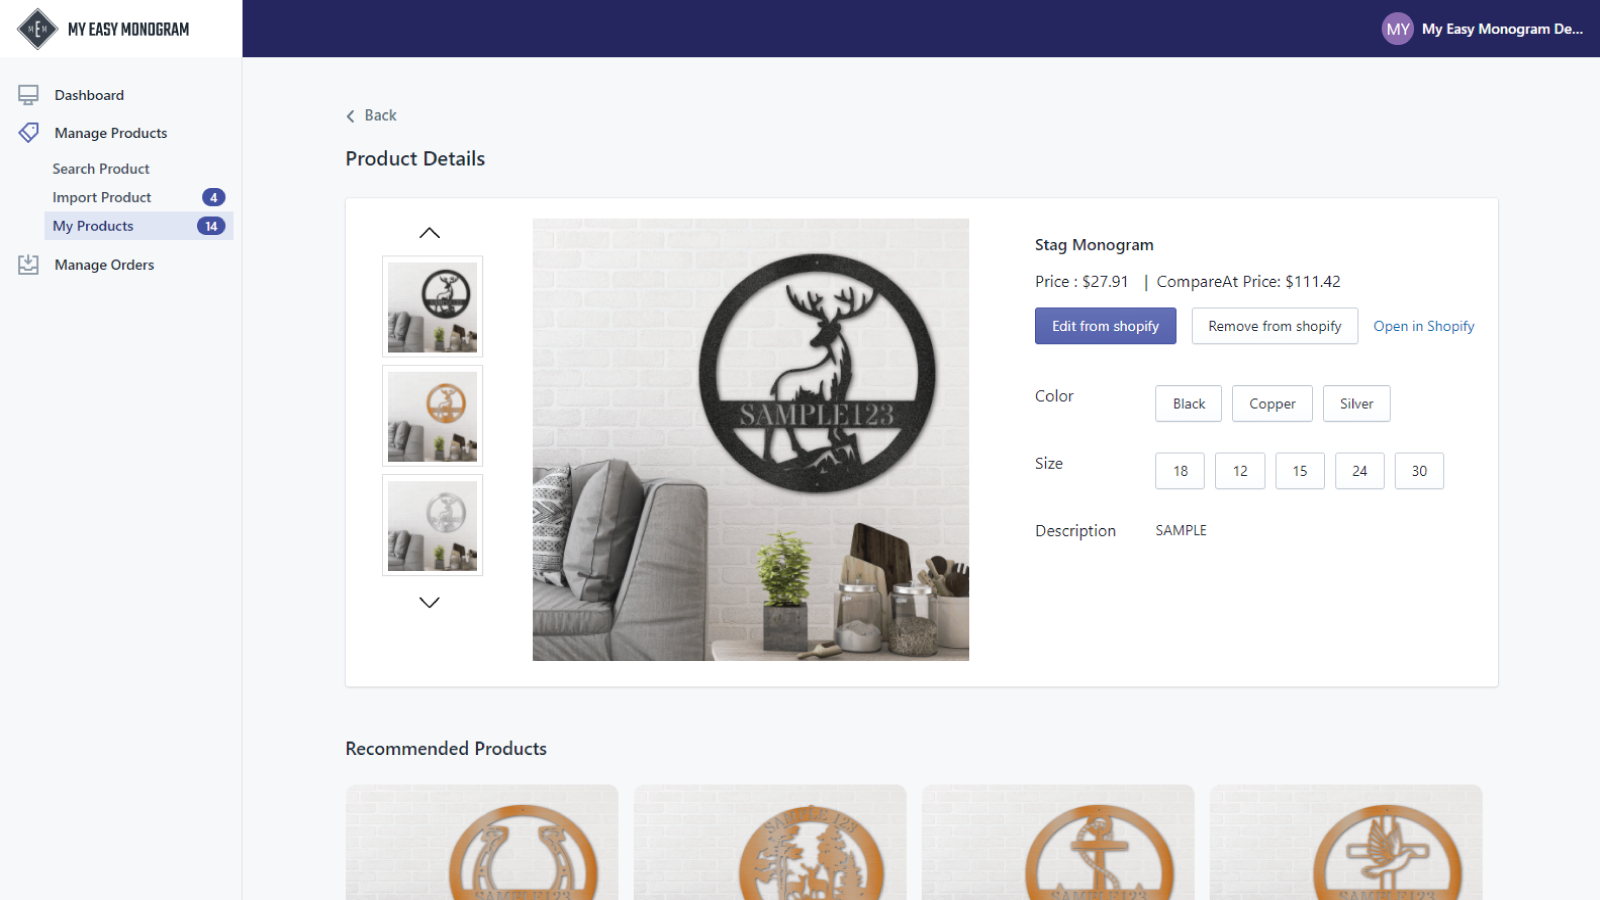 Easily add, remove, or modify products in your Shopify store